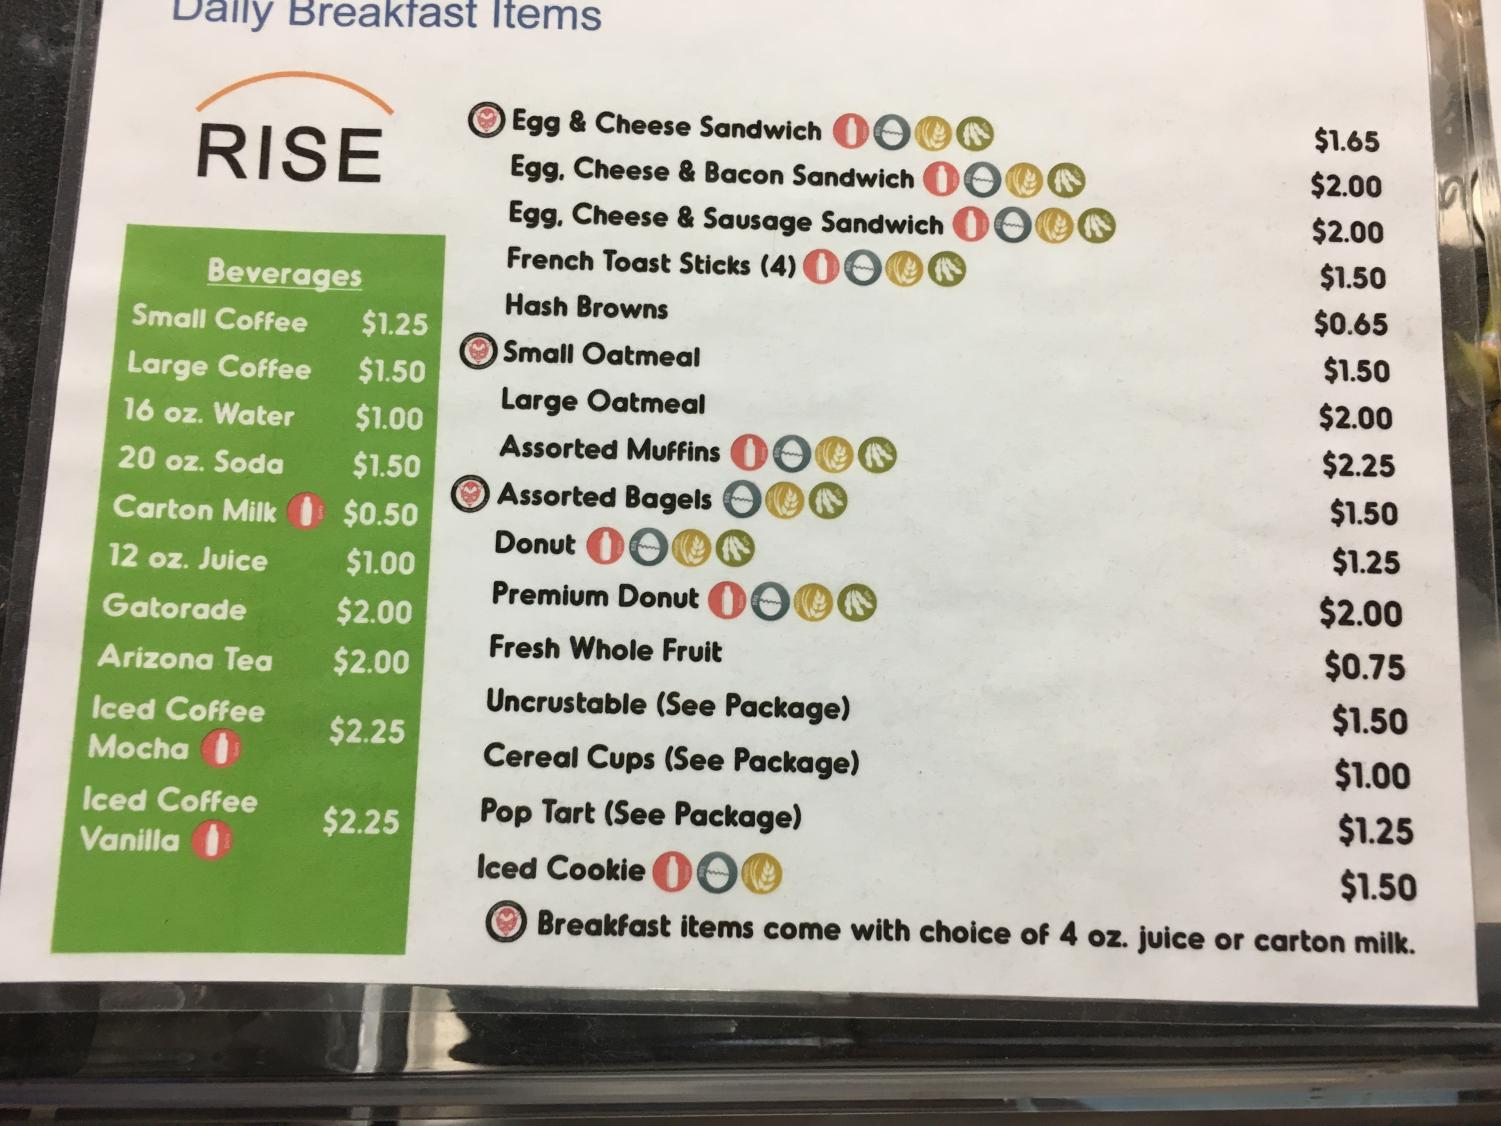 Quest Food Services recently updated its breakfast menu.